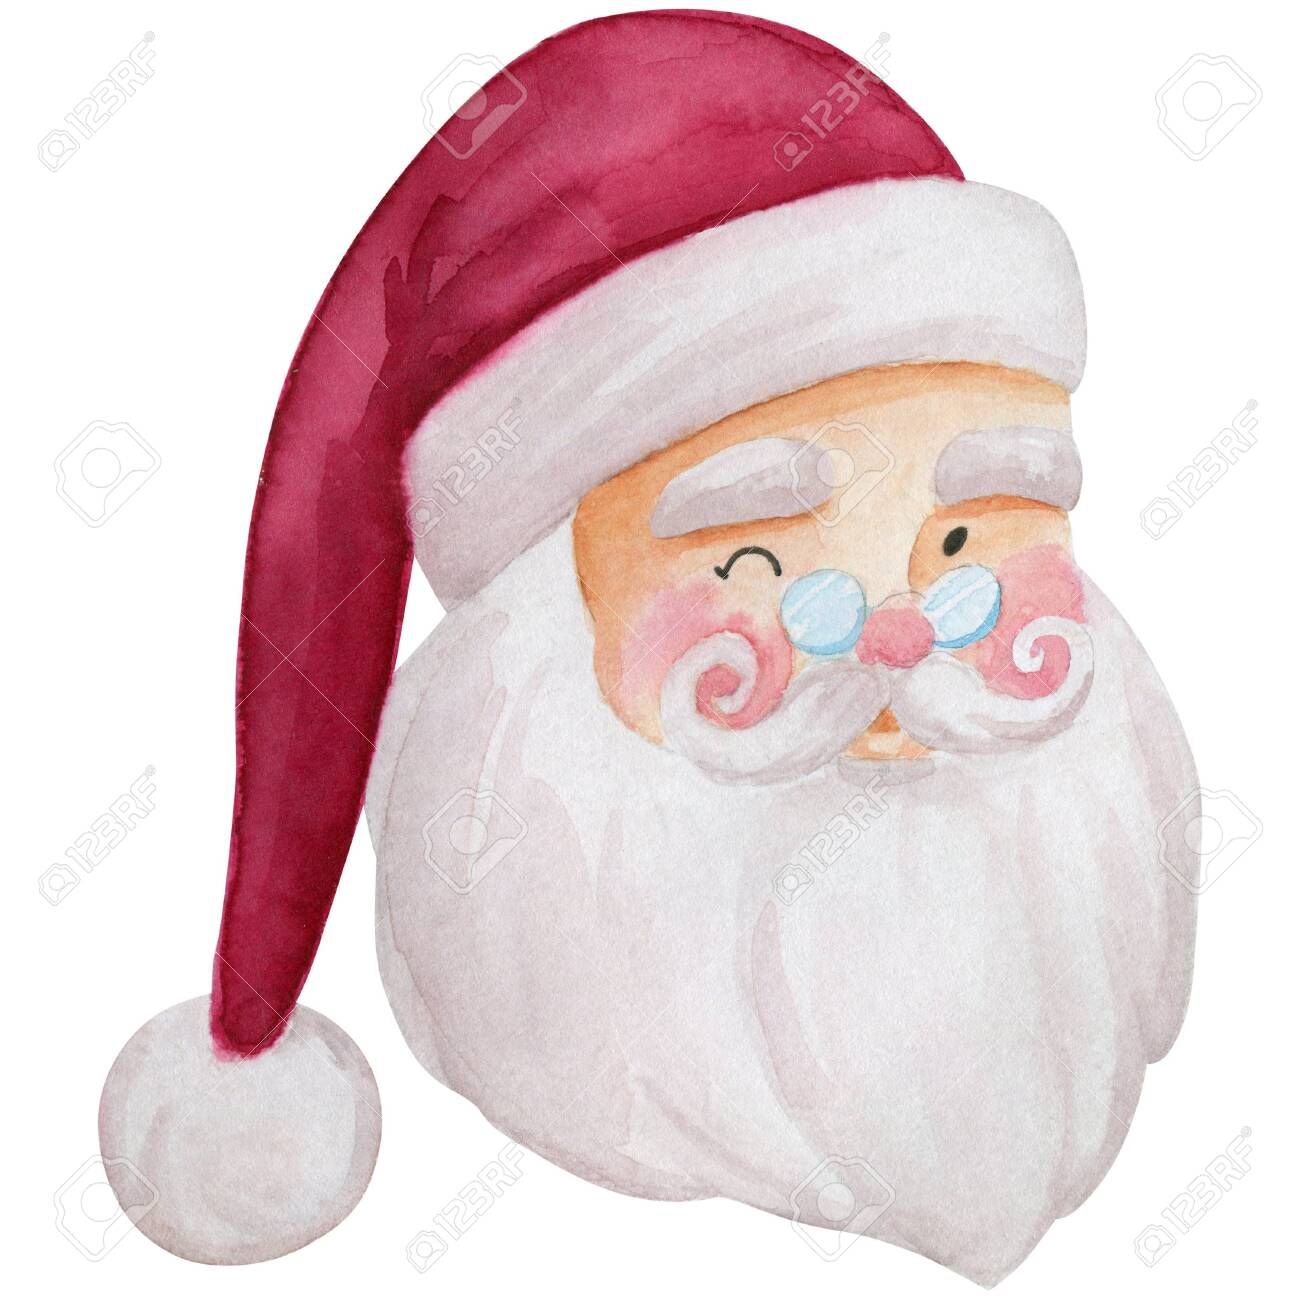 Santa Claus Winking Face Watercolor Illustration Cartoon Character Stock Photo Picture And Royalty Free Image Image 156434623